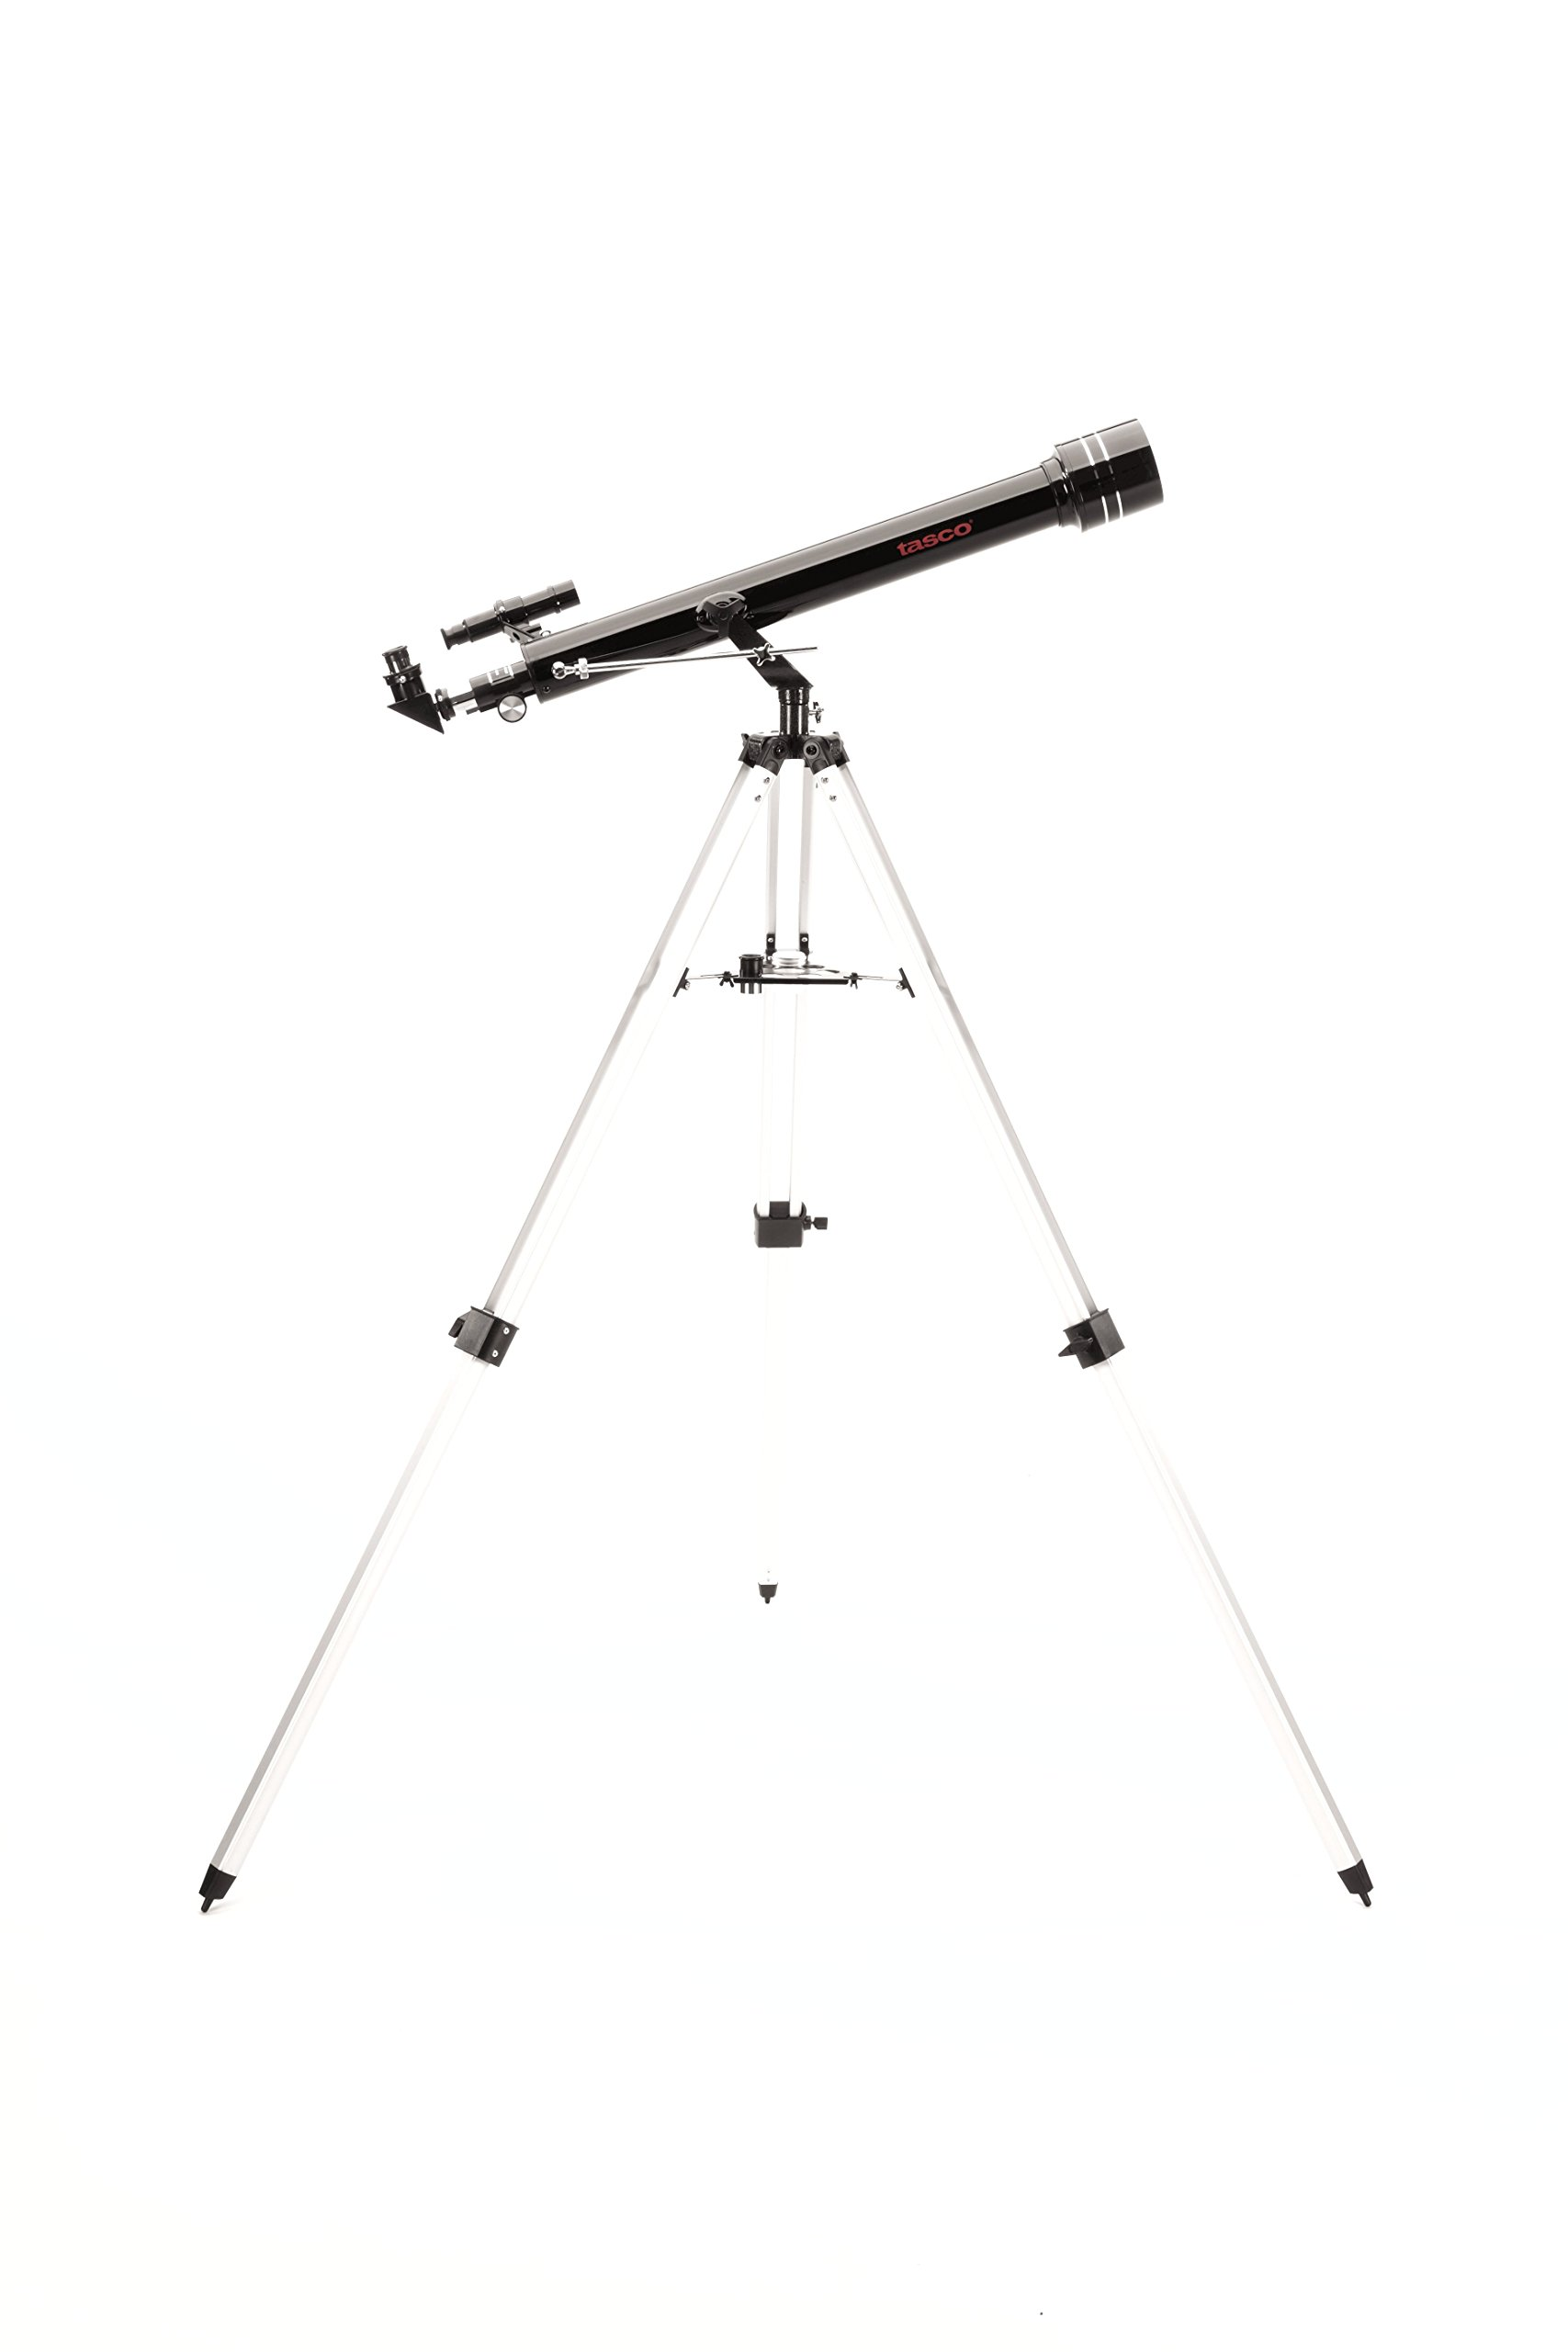 Tasco Novice Refractor Telescope (800-mm x 60-mm)